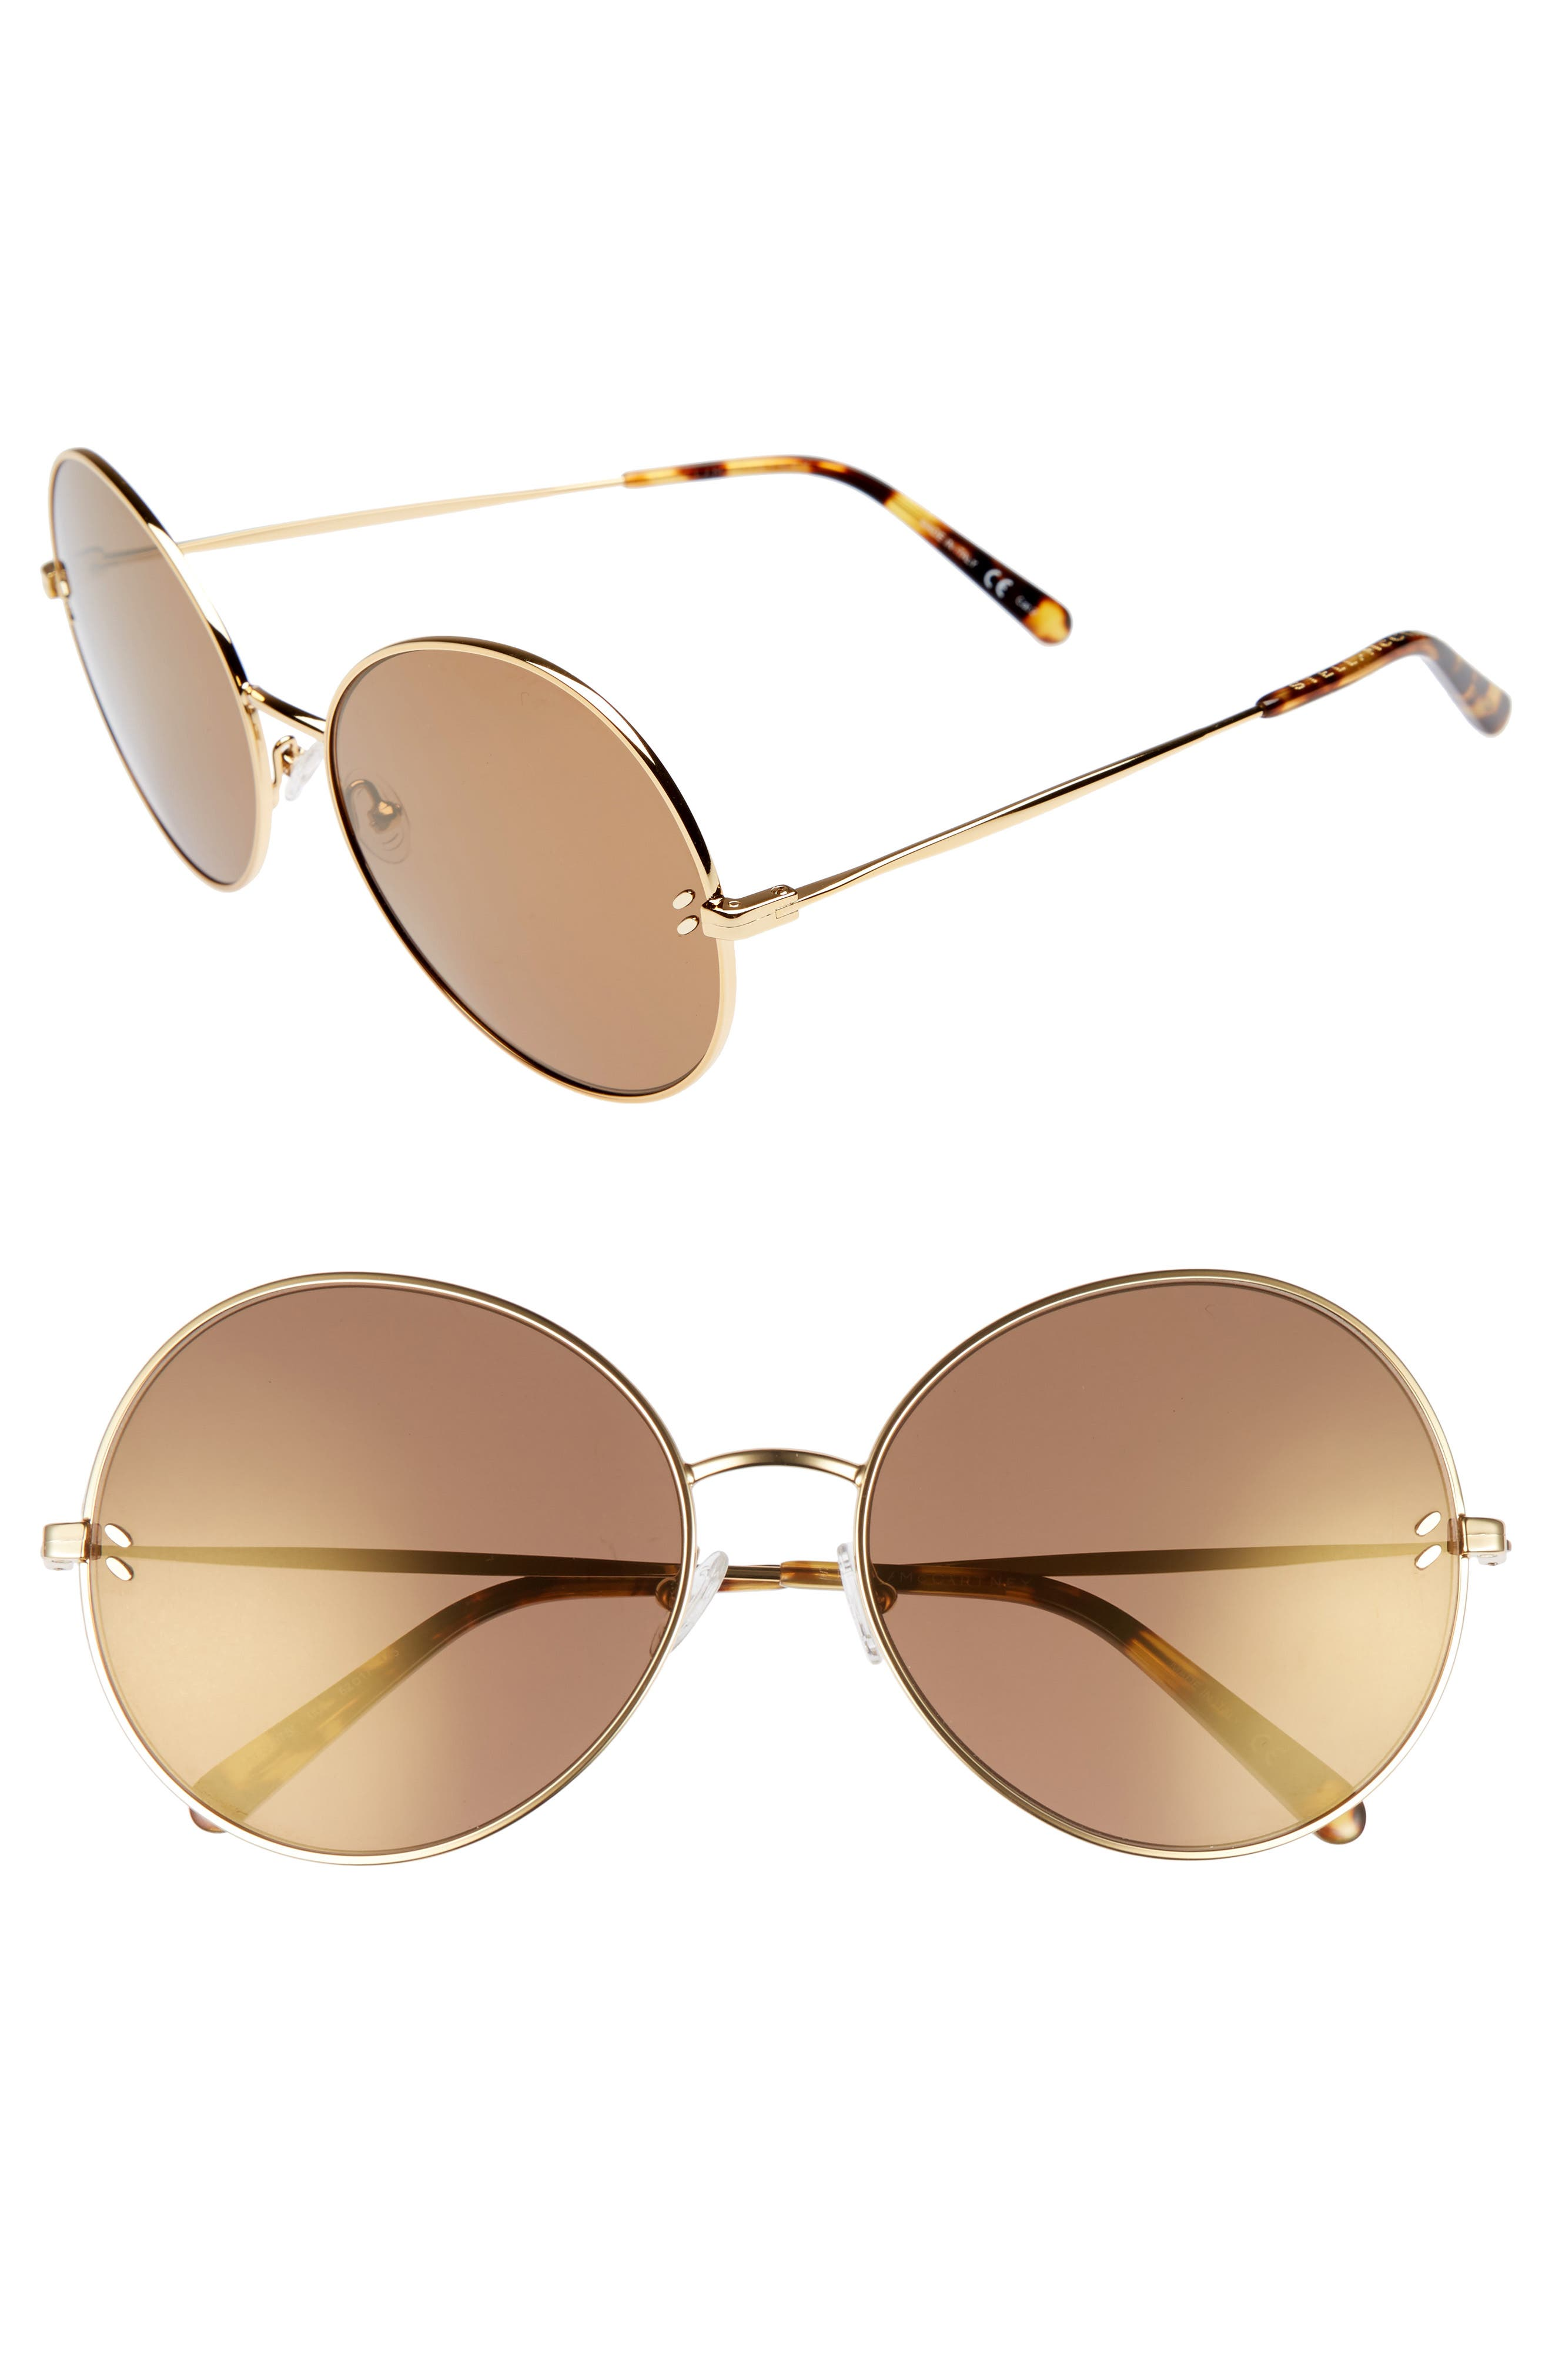 62mm Round Sunglasses,                             Main thumbnail 1, color,                             Gold/ Brown